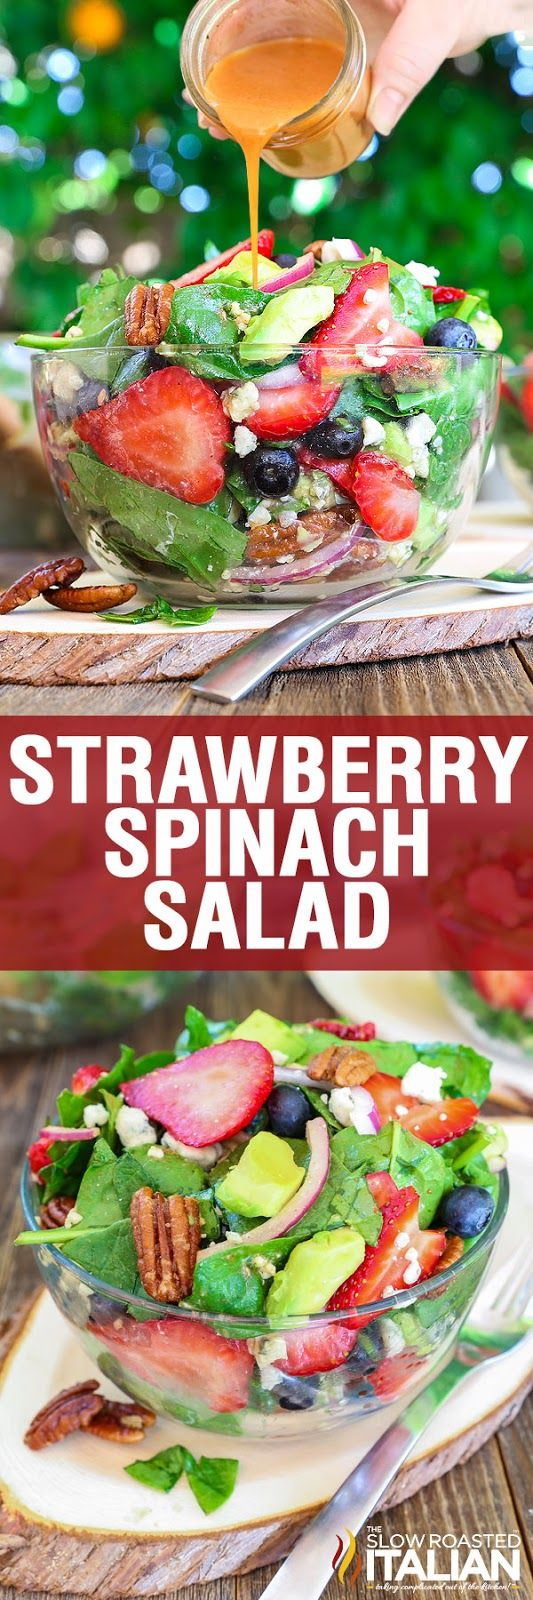 Best Ever Strawberry Spinach Salad Spinach Strawberry Salad Healthy Healthy Recipes